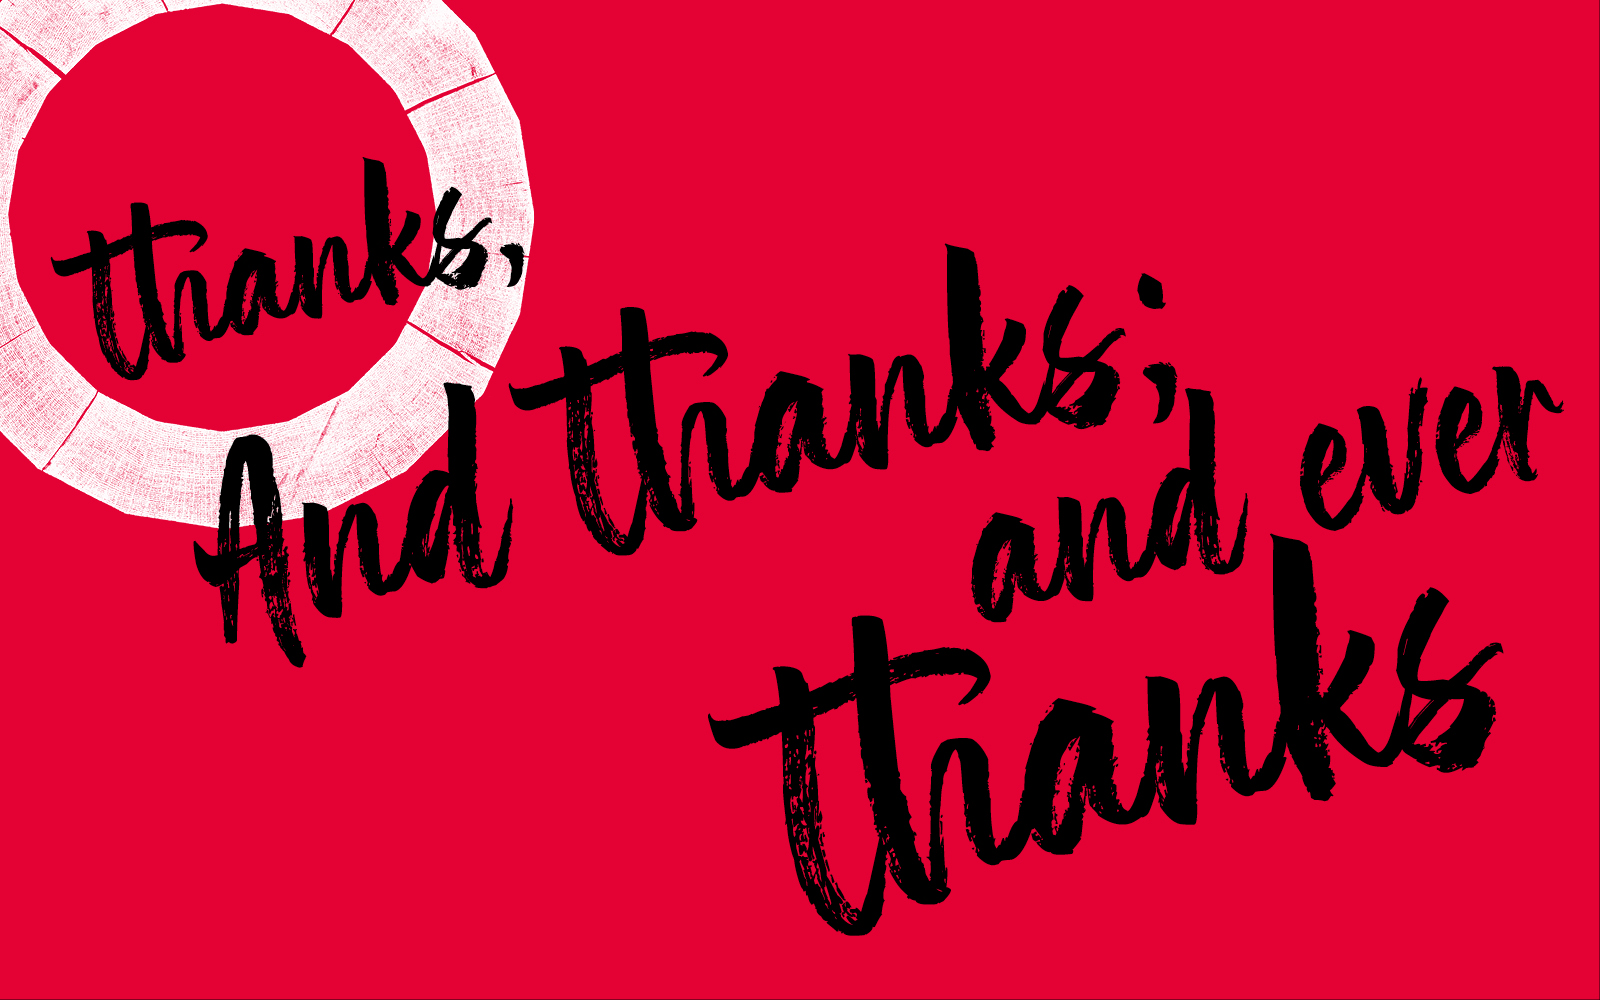 The words 'thanks and thanks and ever thanks' on a red background